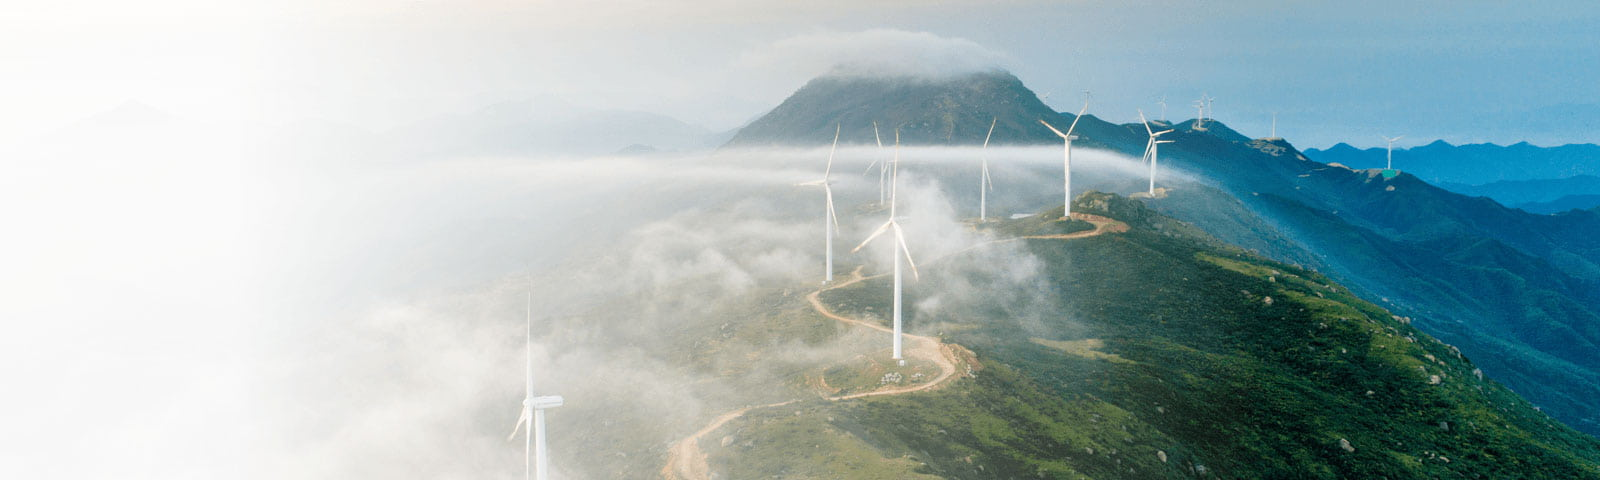 Mountain landscape with wind turbines